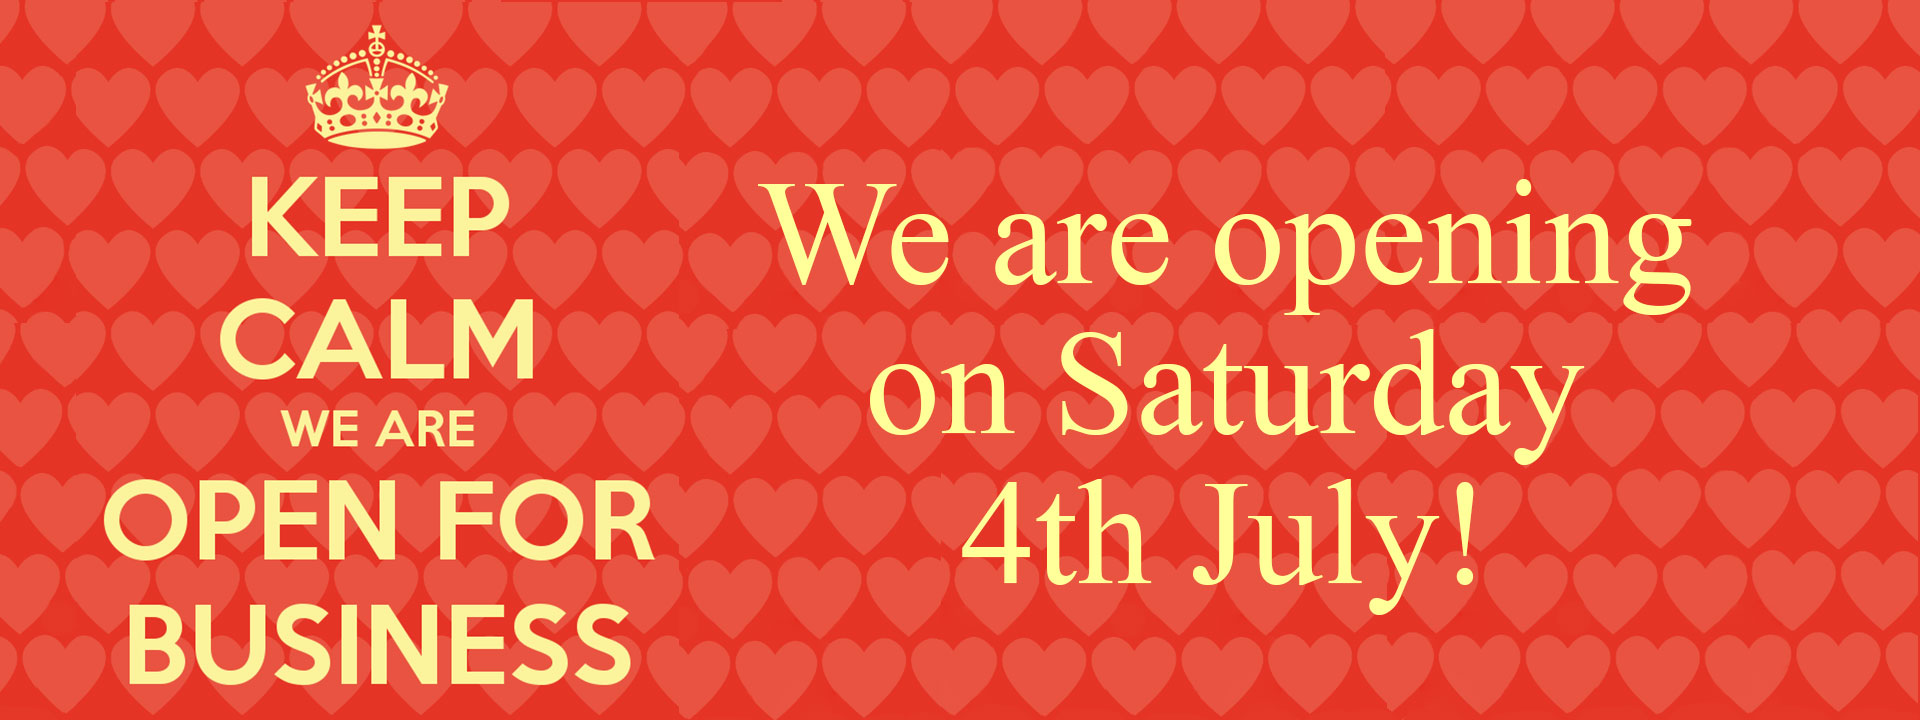 We are opening on Saturday 4th July!